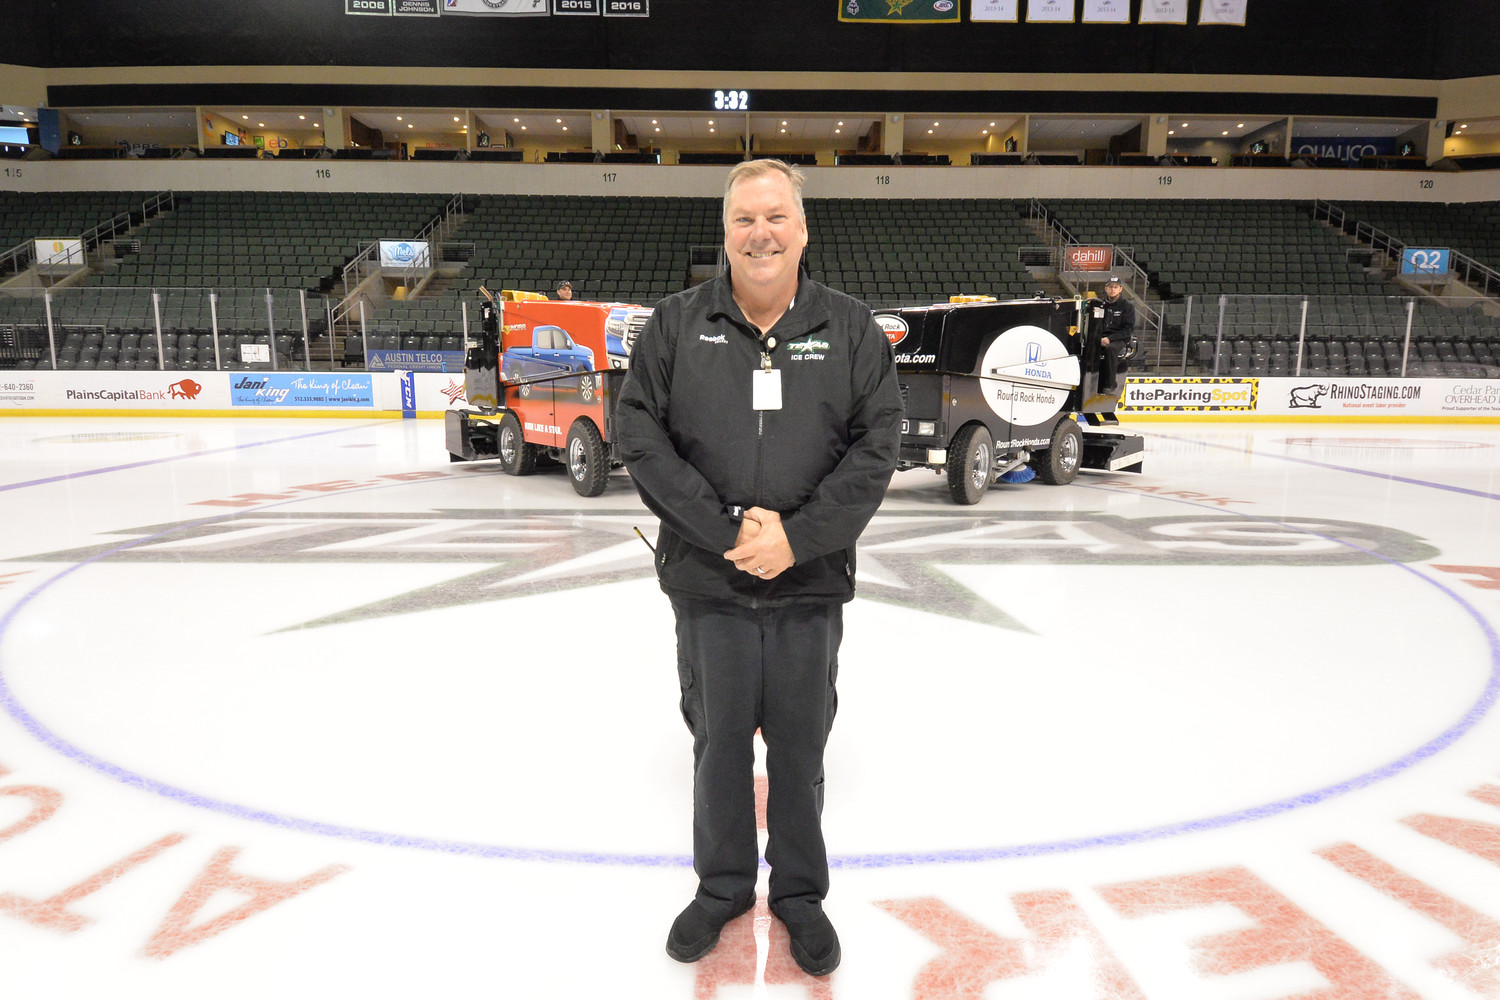 For nine years Bill White made sure the ice was smoothe as glass for the AHL Texas Stars at the H-E-B Center.